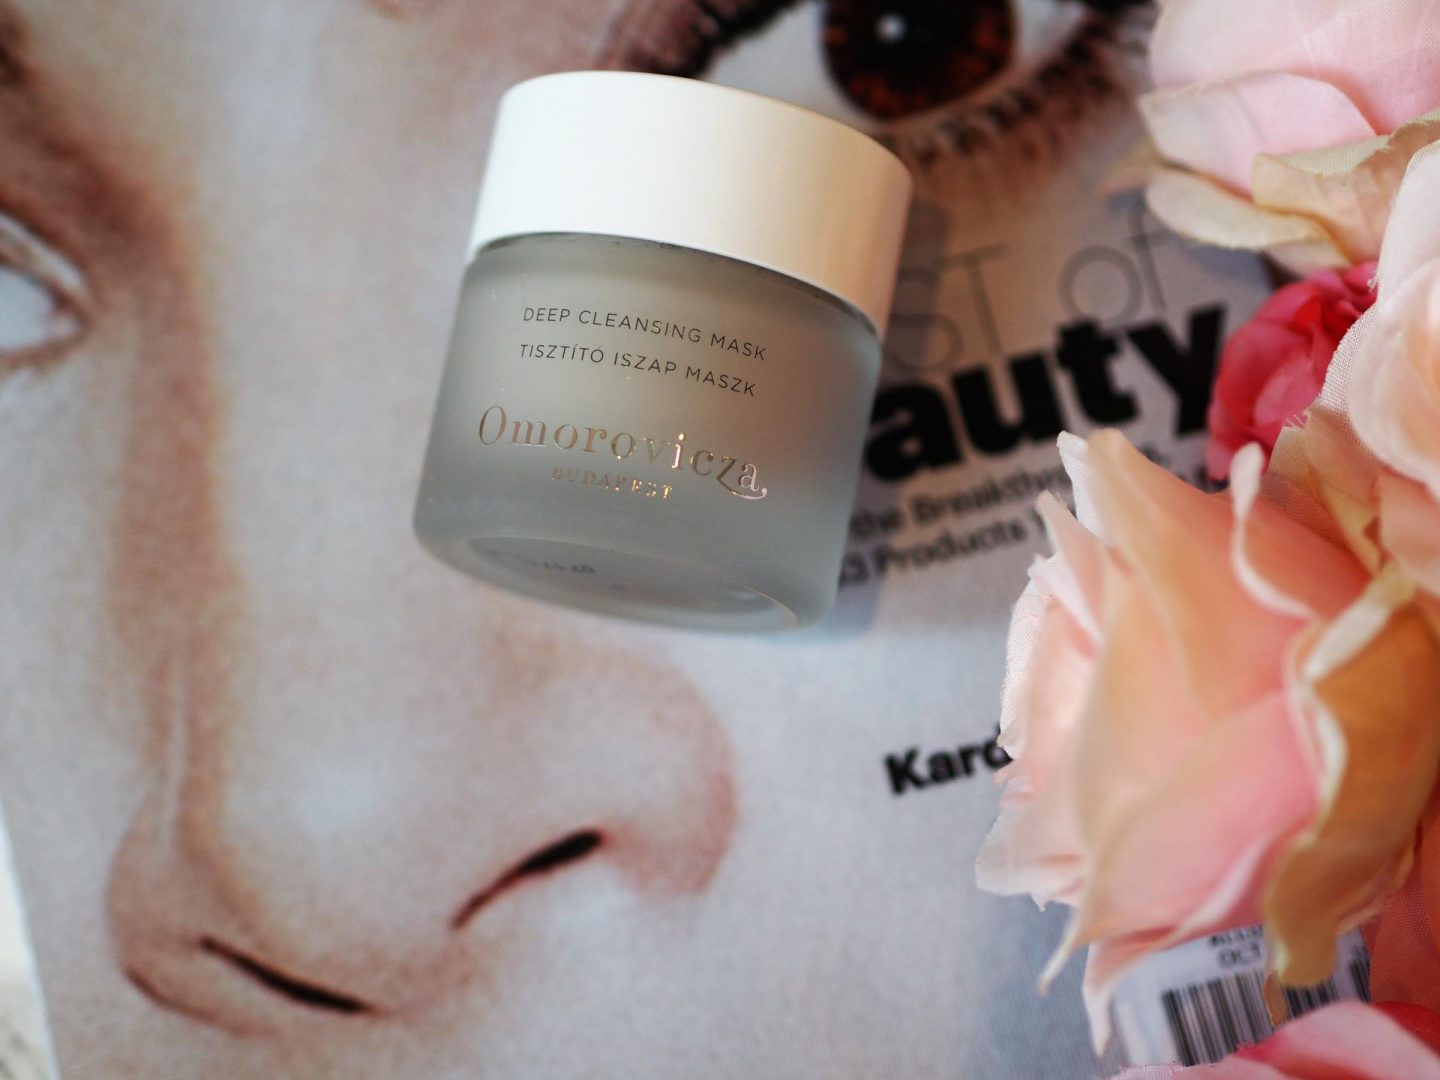 Omorovicza Deep Cleansing Mask (Lookfantastic Exclusive)